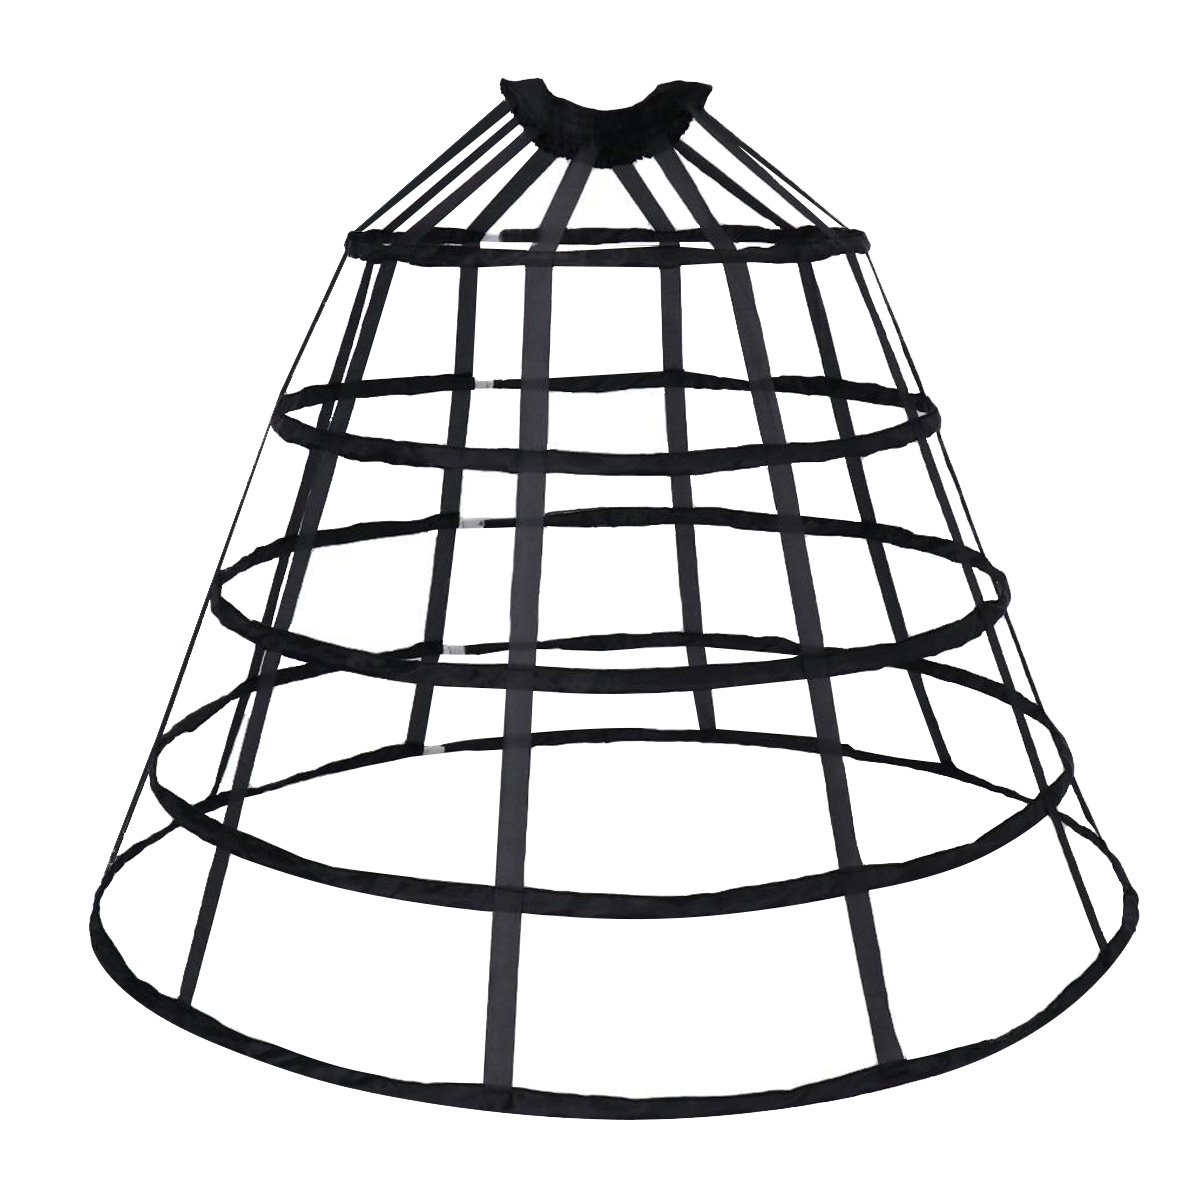 bf8a23c145a HappyStory Crinoline cage Hoop Skirt Pannier 5 Rows Elastic Waist Simple  cage (Black 5 Hoops)  Amazon.ca  Clothing   Accessories